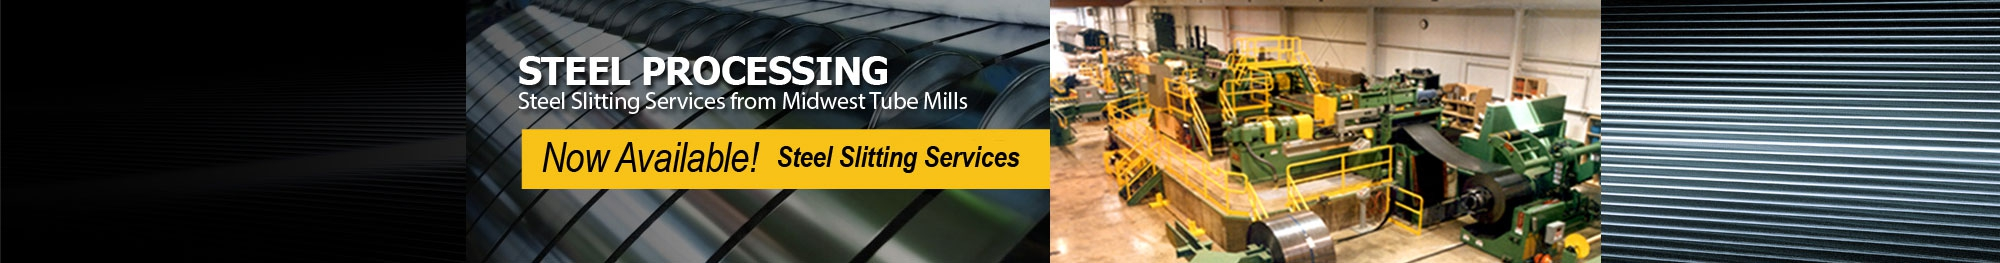 Slitting Services Header Image